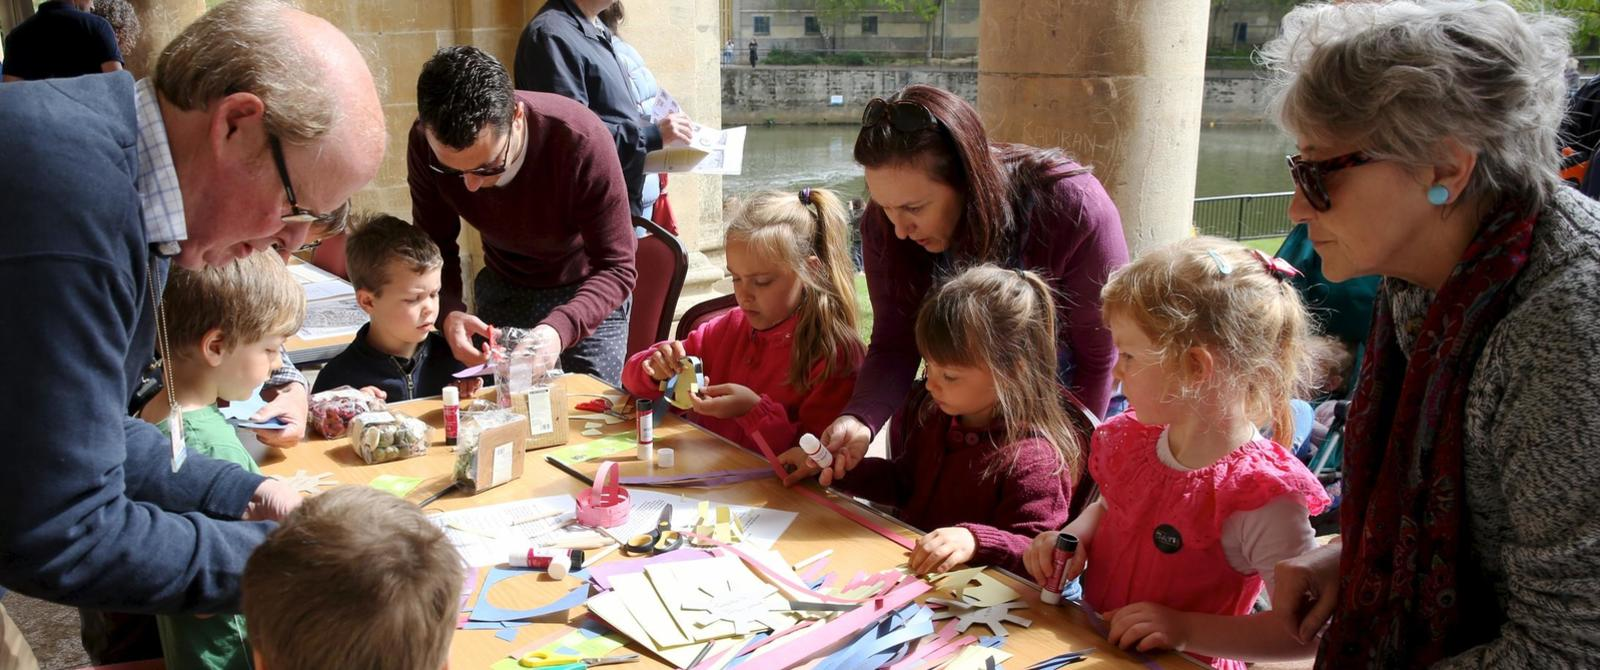 Image of craft activities at World Heritage Day